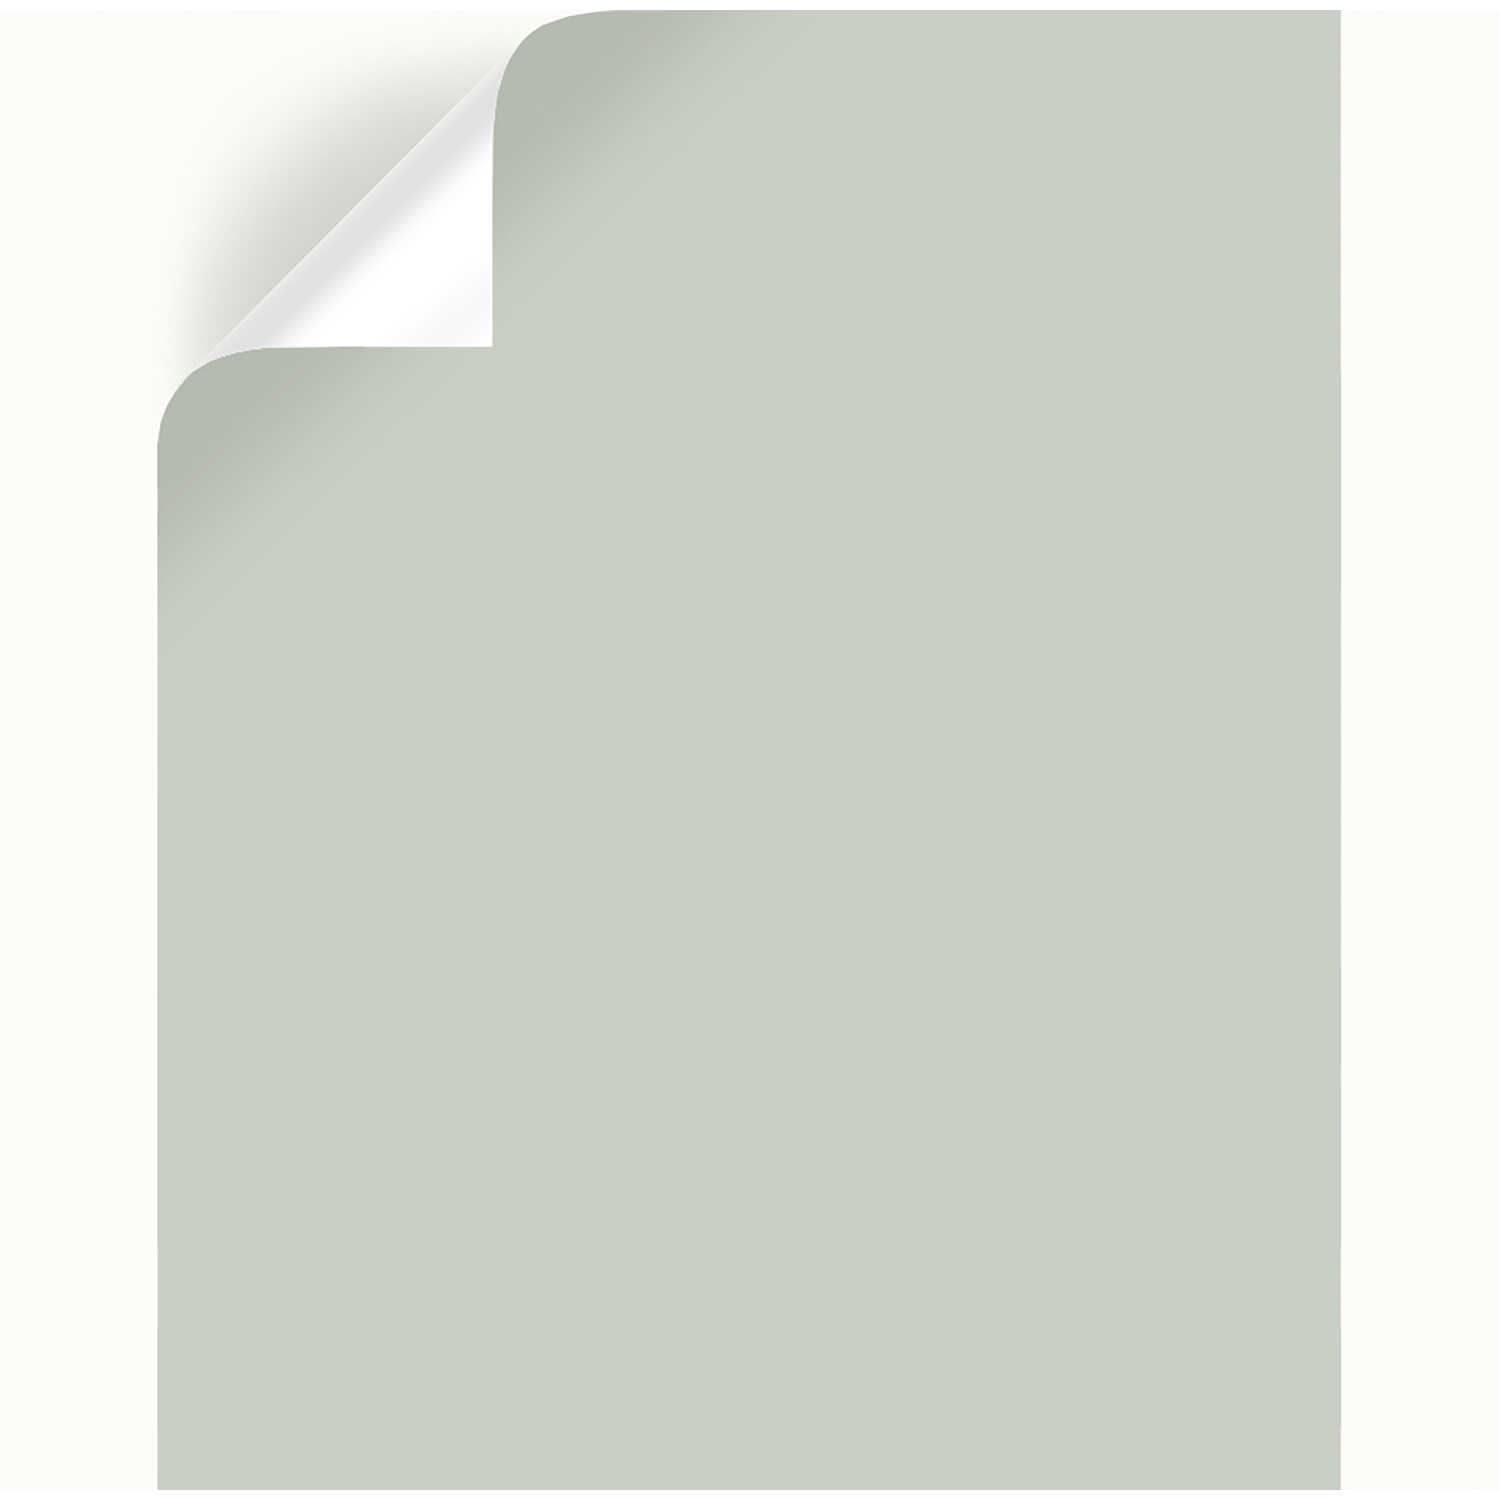 Magnolia Home by Joanna Gaines  Emmie's Room  Peel & Stick Color Sample